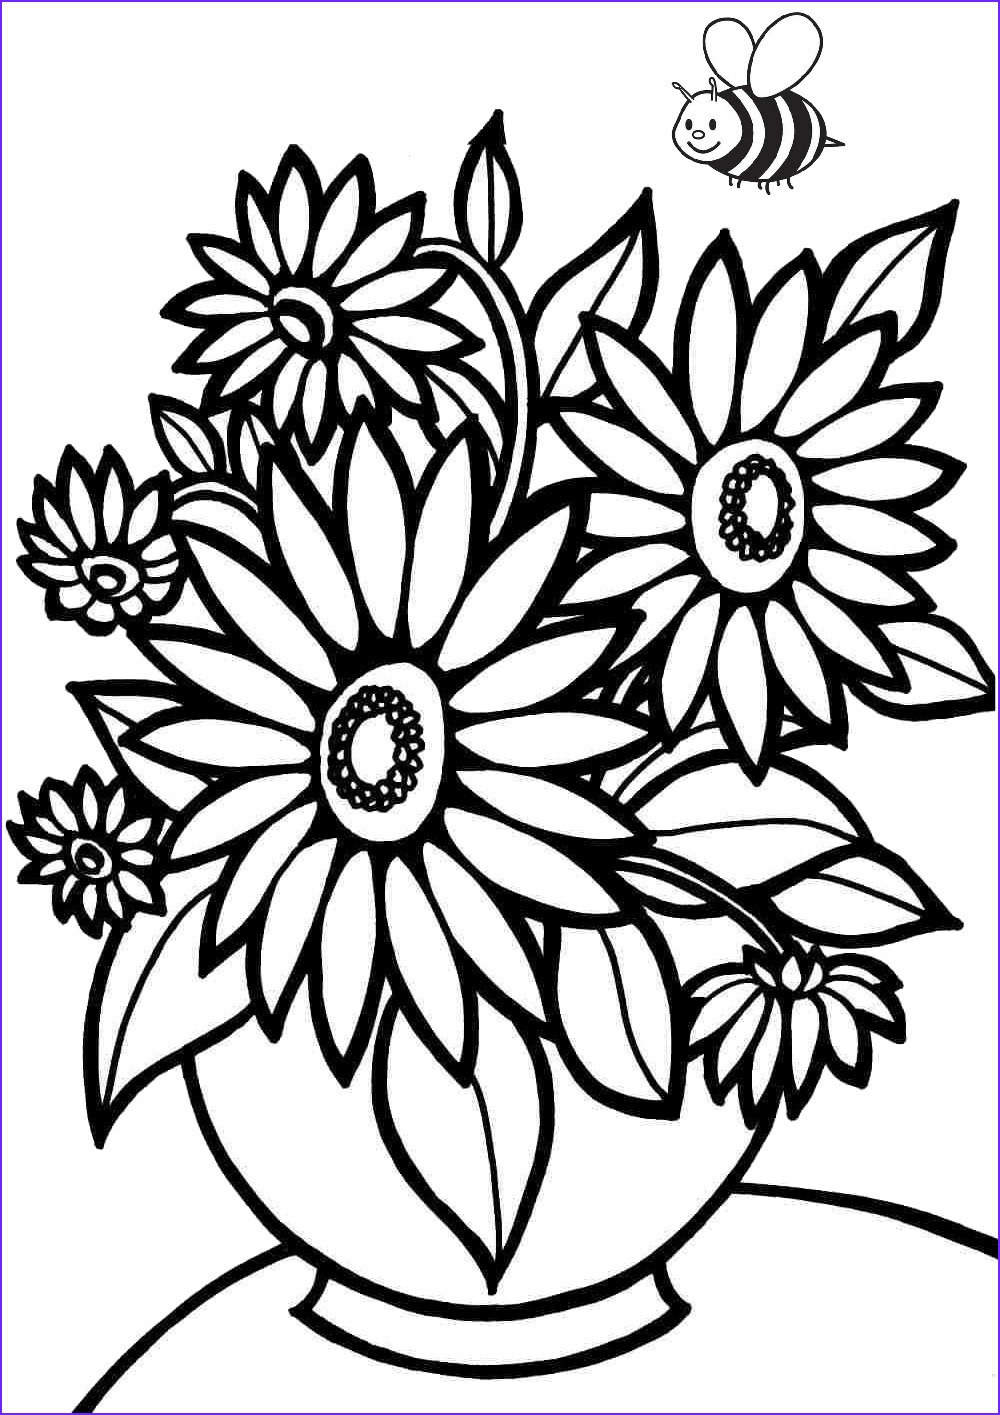 Flowers Coloring Page For Kids Elegant Collection 36 Printable Flower Coloring Pages For Adults & Kids